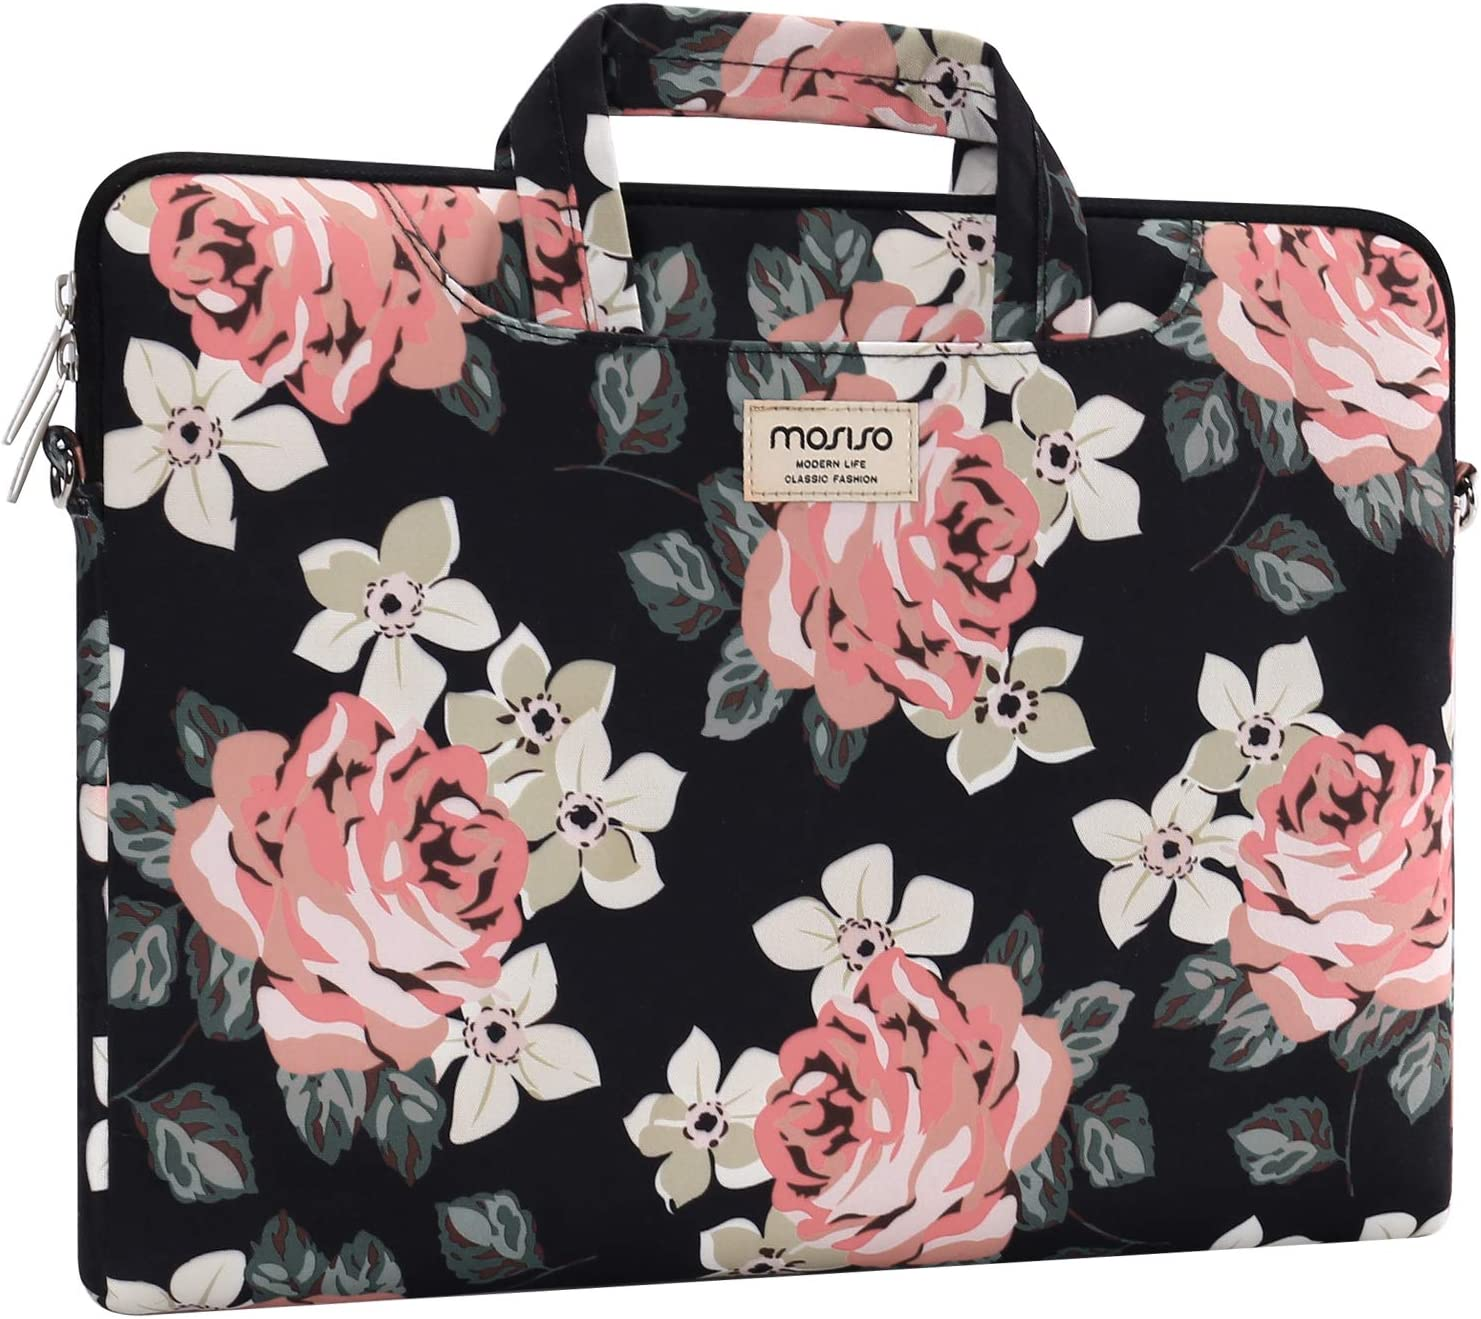 Rose Carrying Briefcase Sleeve Case with Trolley Belt MOSISO Laptop Shoulder Bag Compatible with MacBook Pro//Air 13 inch 13-13.3 inch Notebook Computer